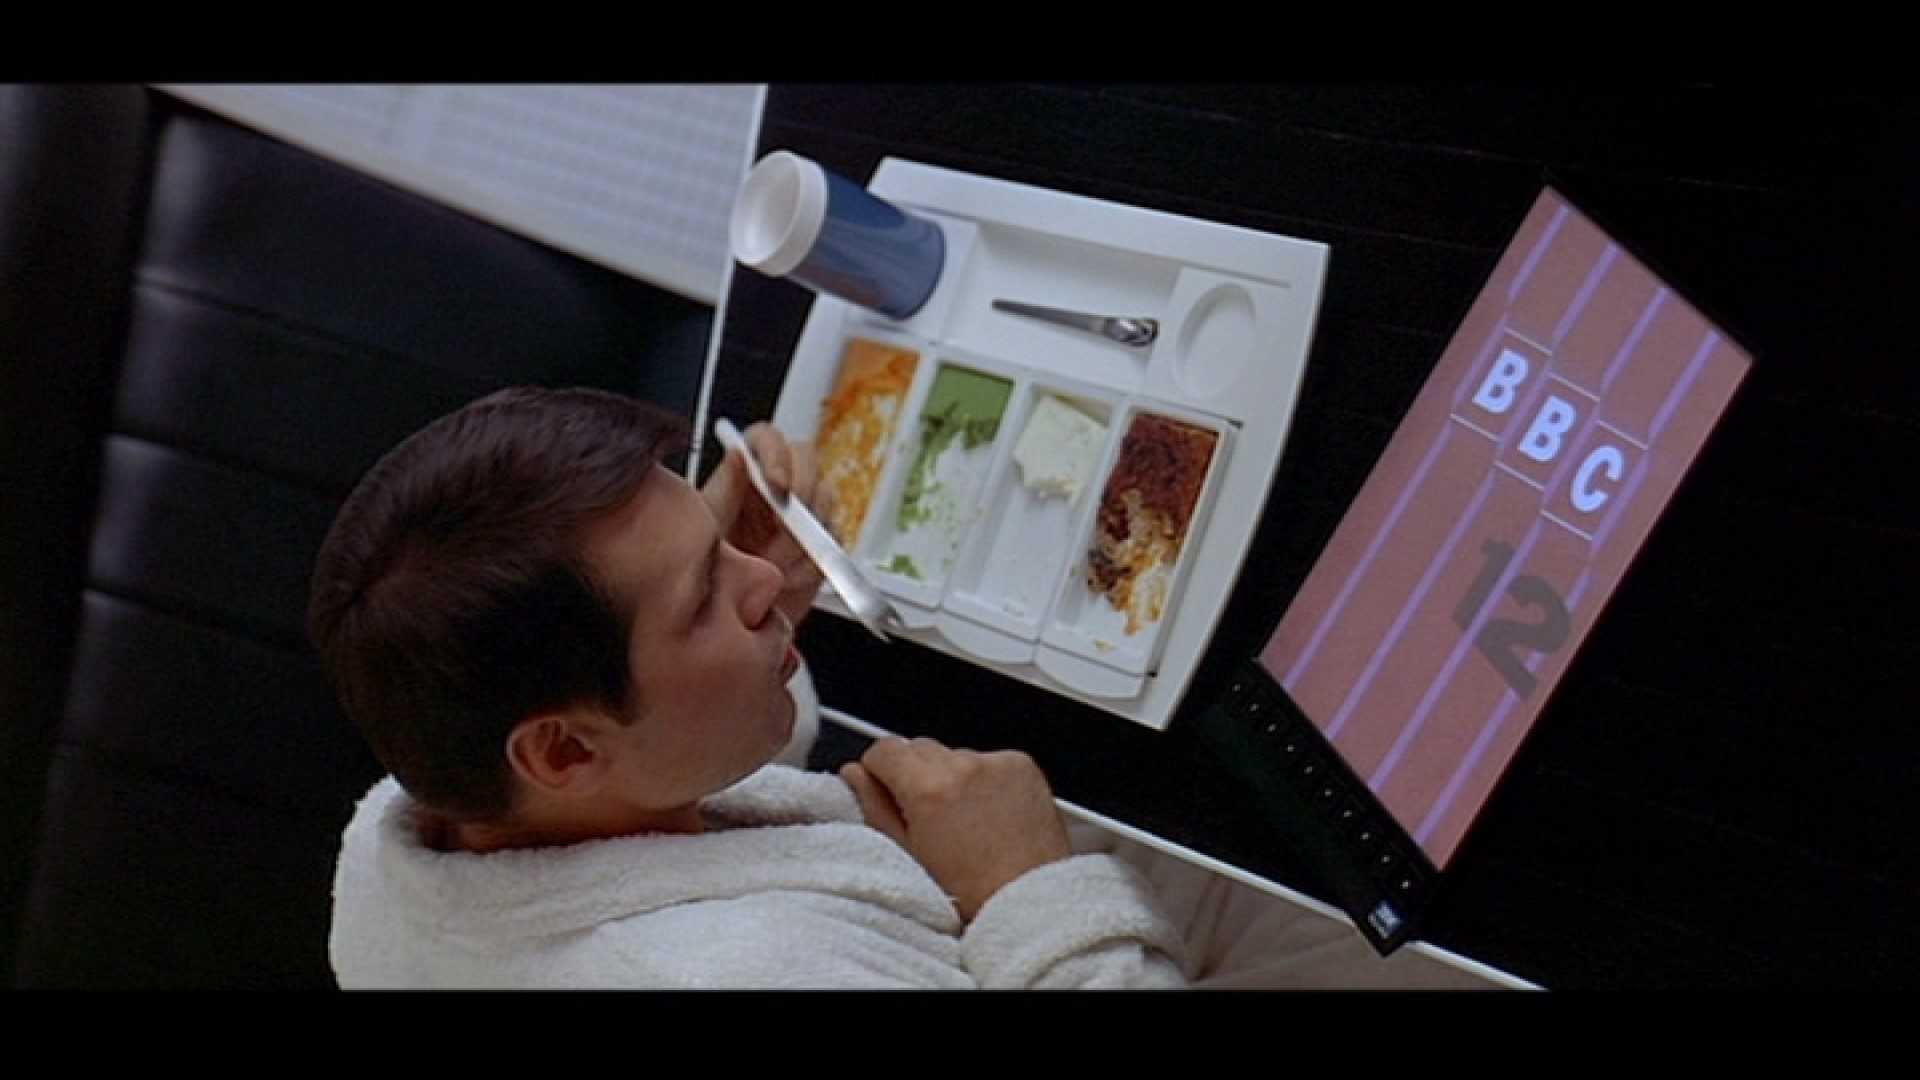 2001: A SPACE ODYSSEY (1968) - Discovery One Cutlery - Image 7 of 8